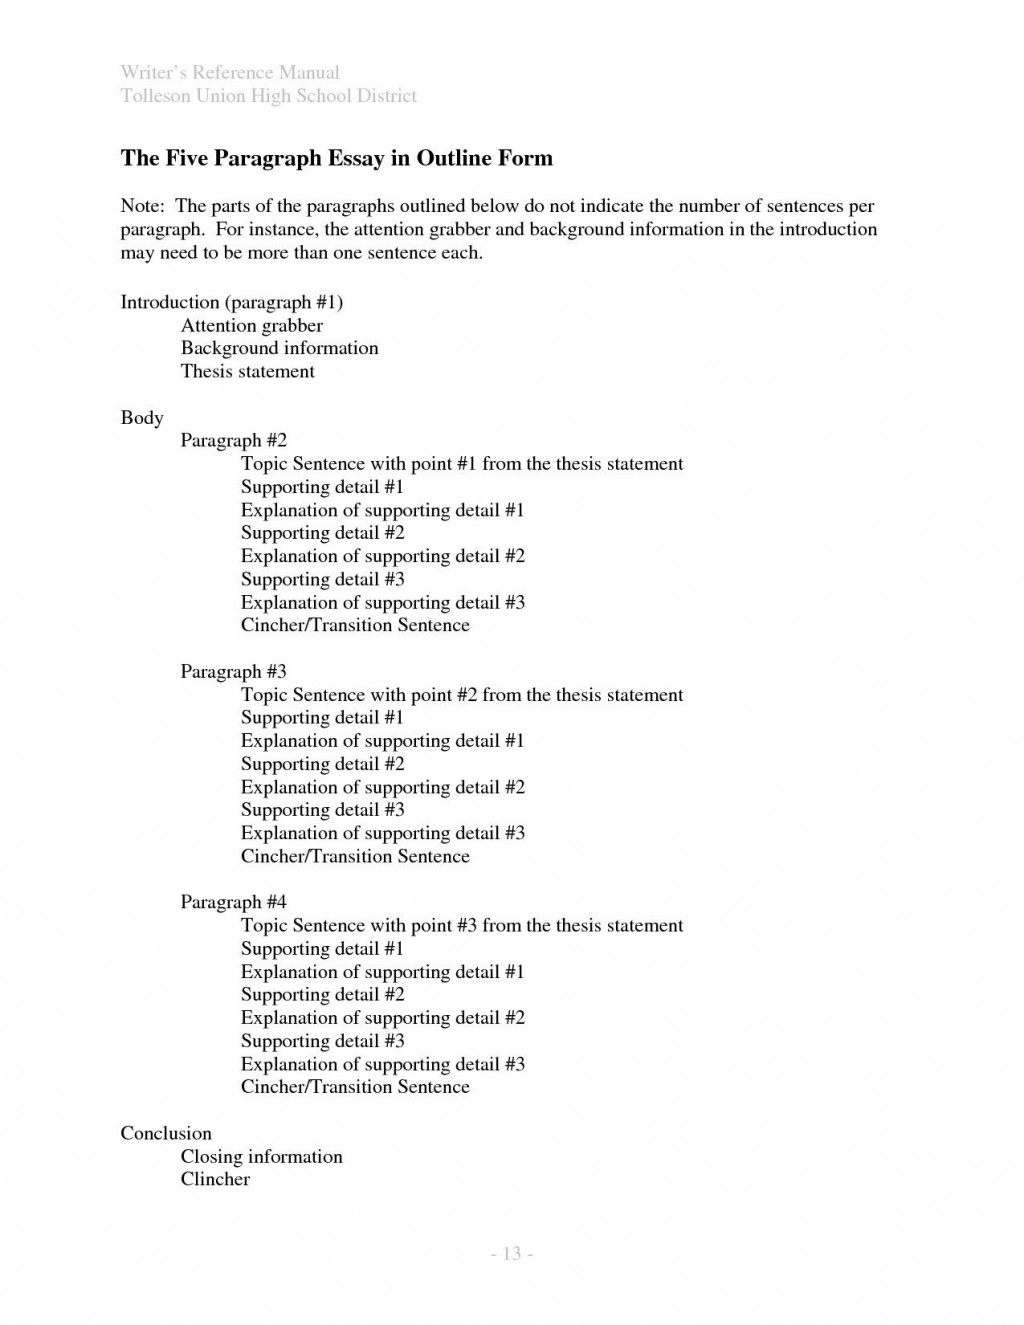 011 Intro Paragraph Outline Research Best Paper Introduction For Large